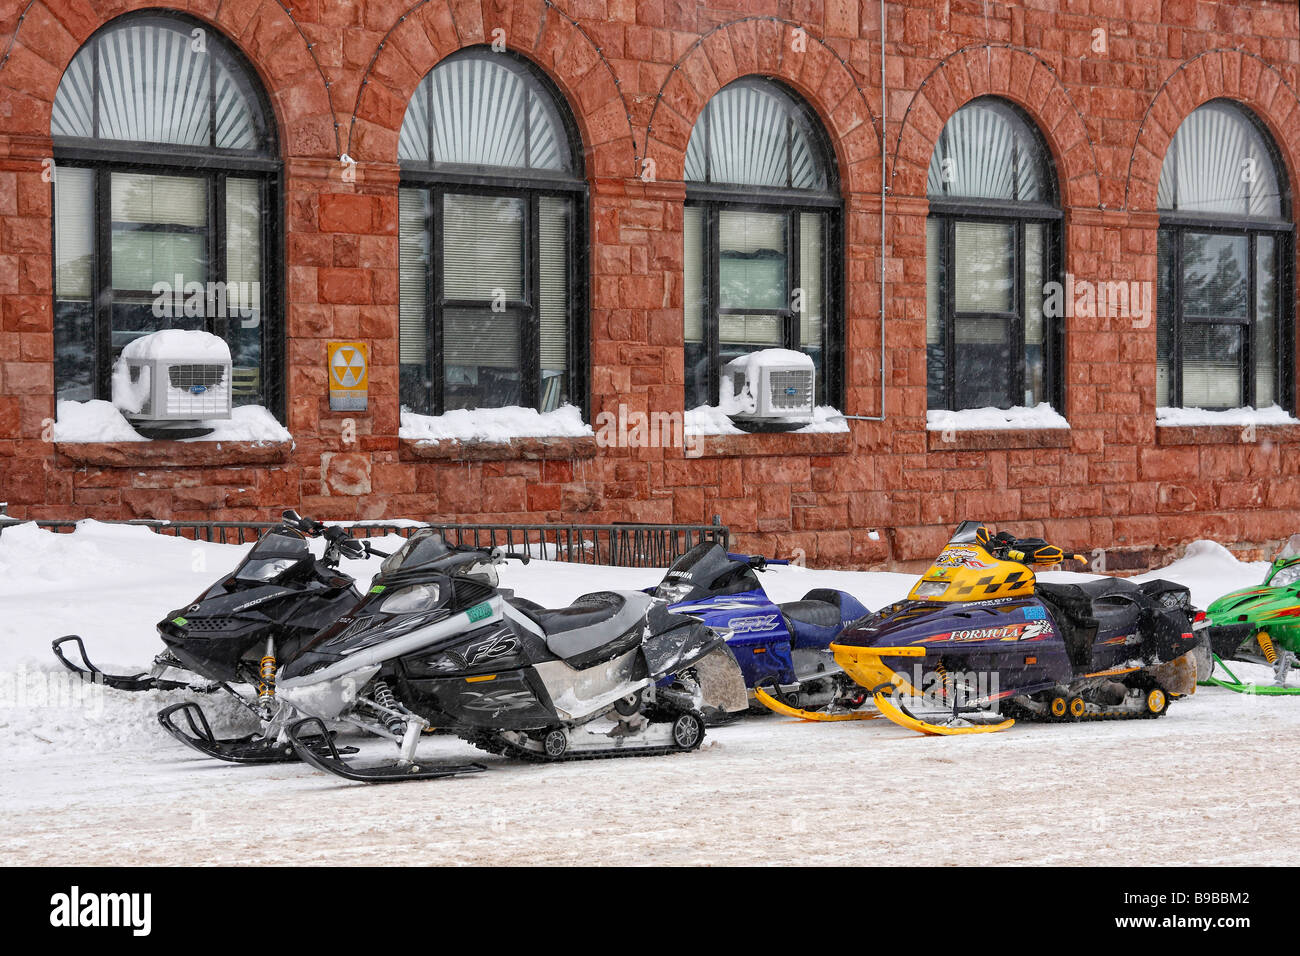 Snowmobiles parked on the street in USA - Stock Image